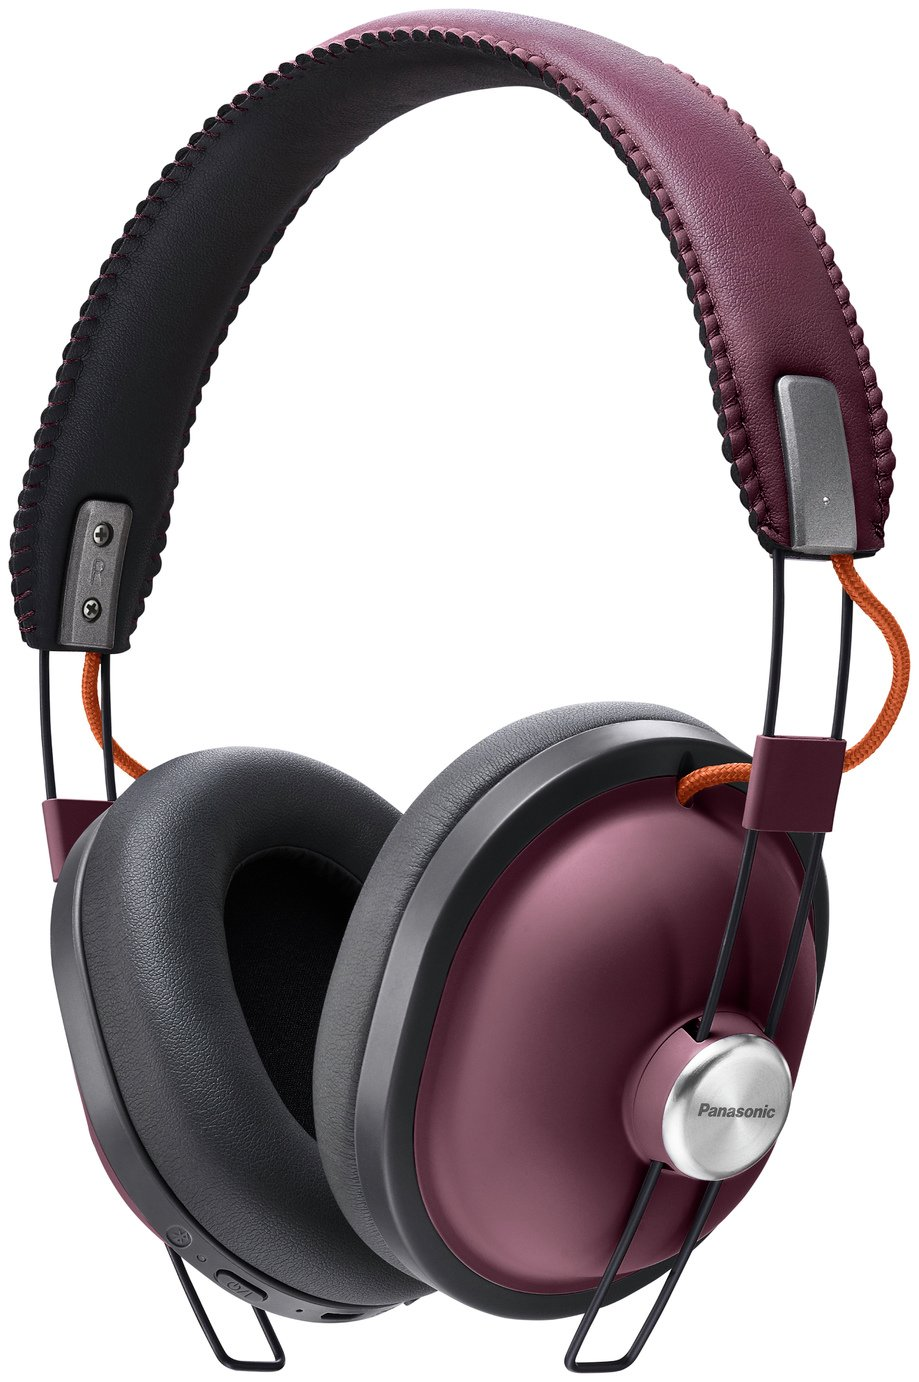 Panasonic RP-HTX80BE Wireless Over-Ear Headphones - Burgundy